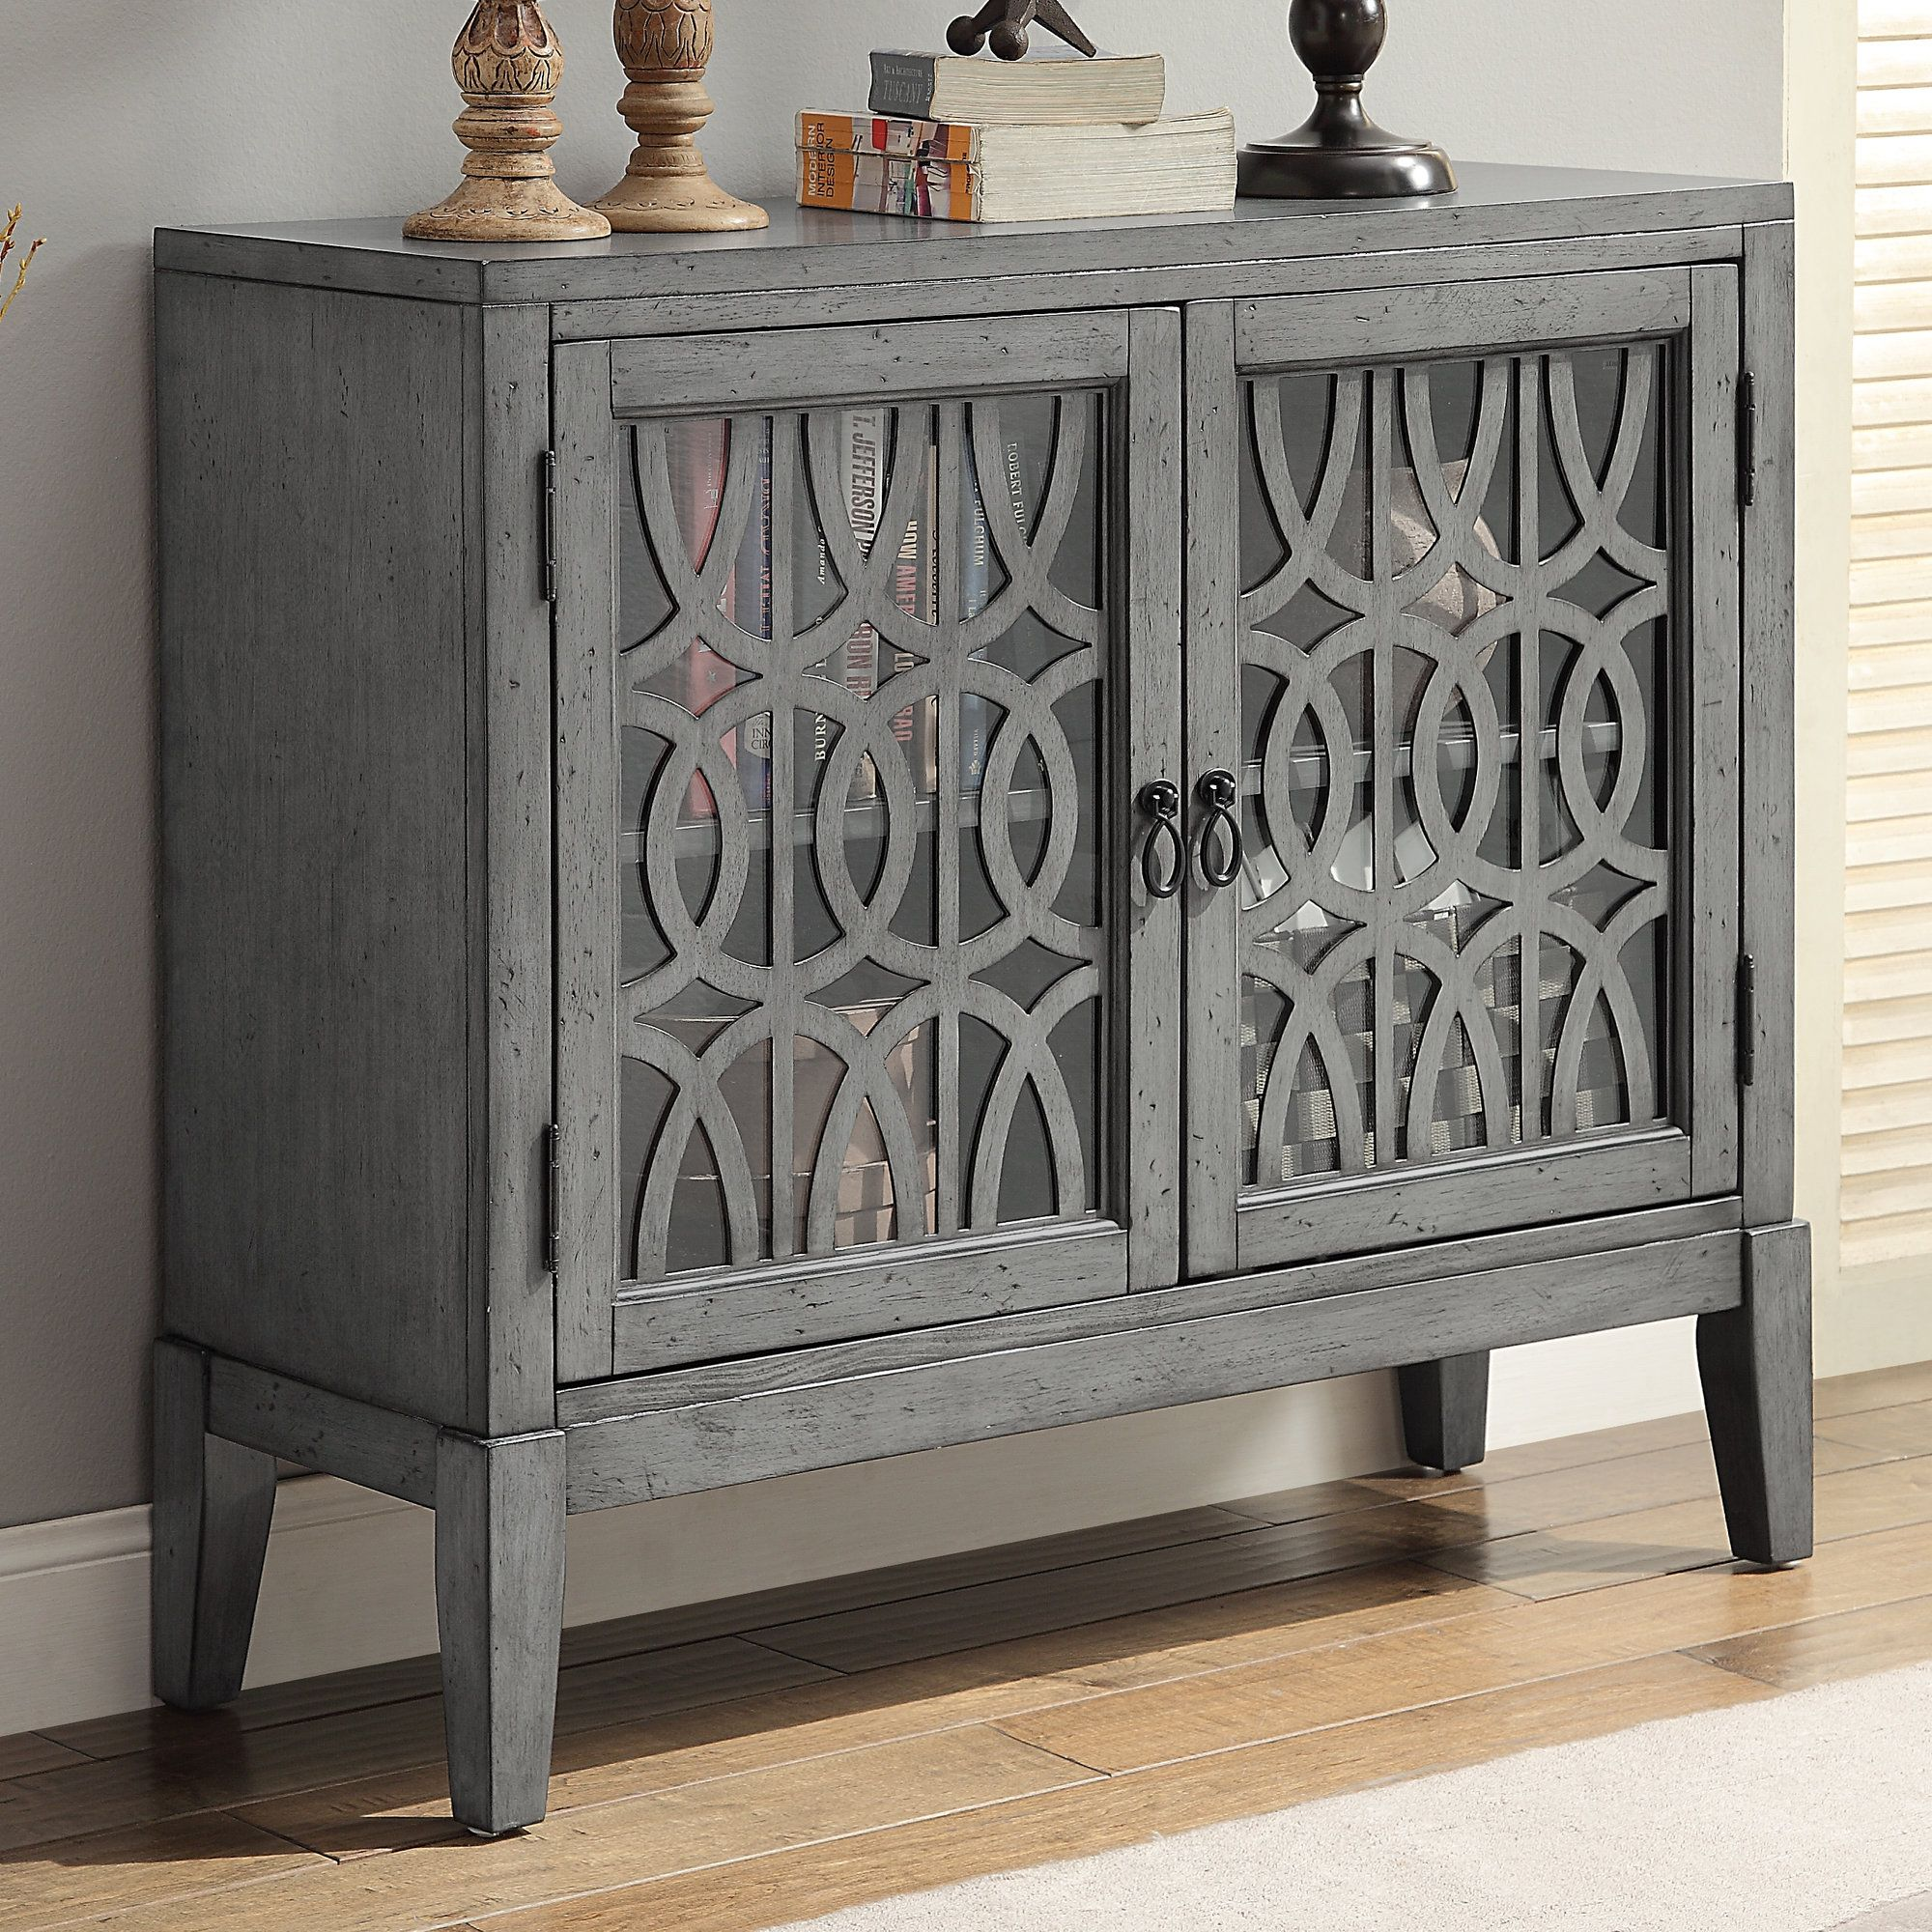 Sally Cabinet  Products  Pinterest  Doors Budgeting and Living rooms